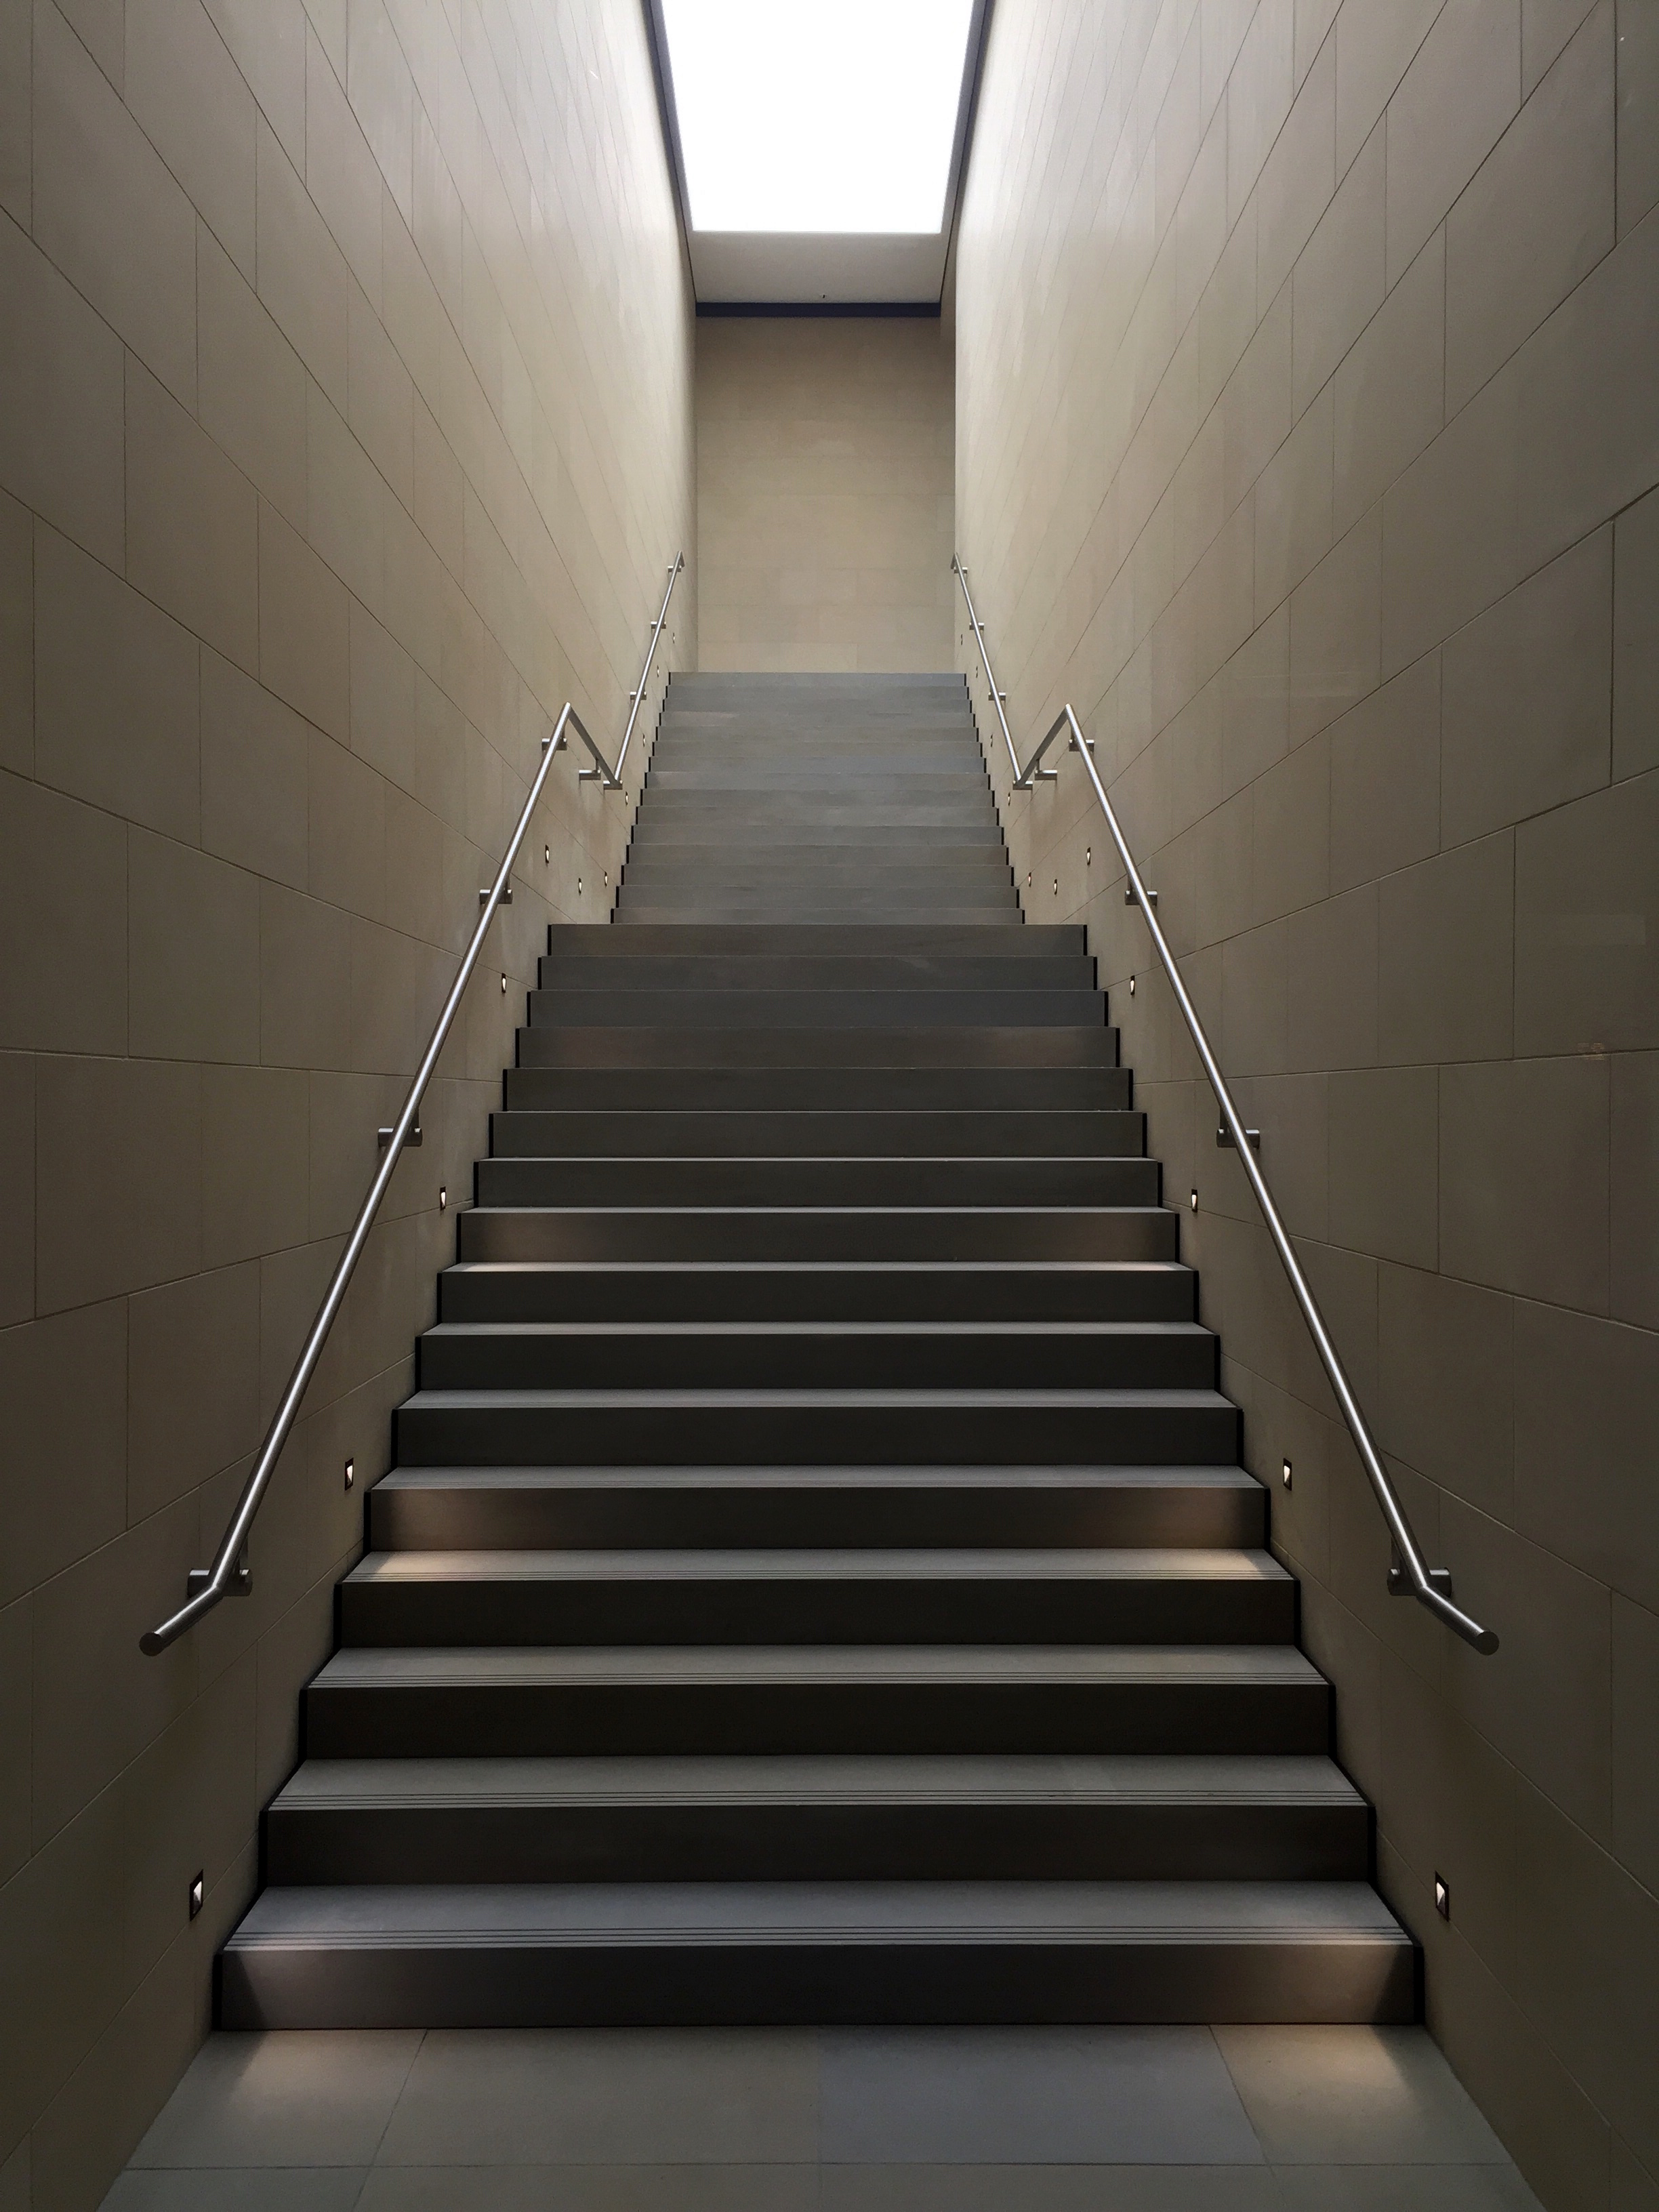 """Jan. 18, 2019 - """" A few minutes of stair climbing, at short intervals throughout the day, can improve cardiovascular health , according to new research from kinesiologists at McMaster University and UBC Okanagan."""" Study participants climbed a 3-flight stairwell 3 times per day (separated by 1 to 4 hours of recovery), repeated the protocol just 3 times a week for 6 weeks and it seemed to be effective."""